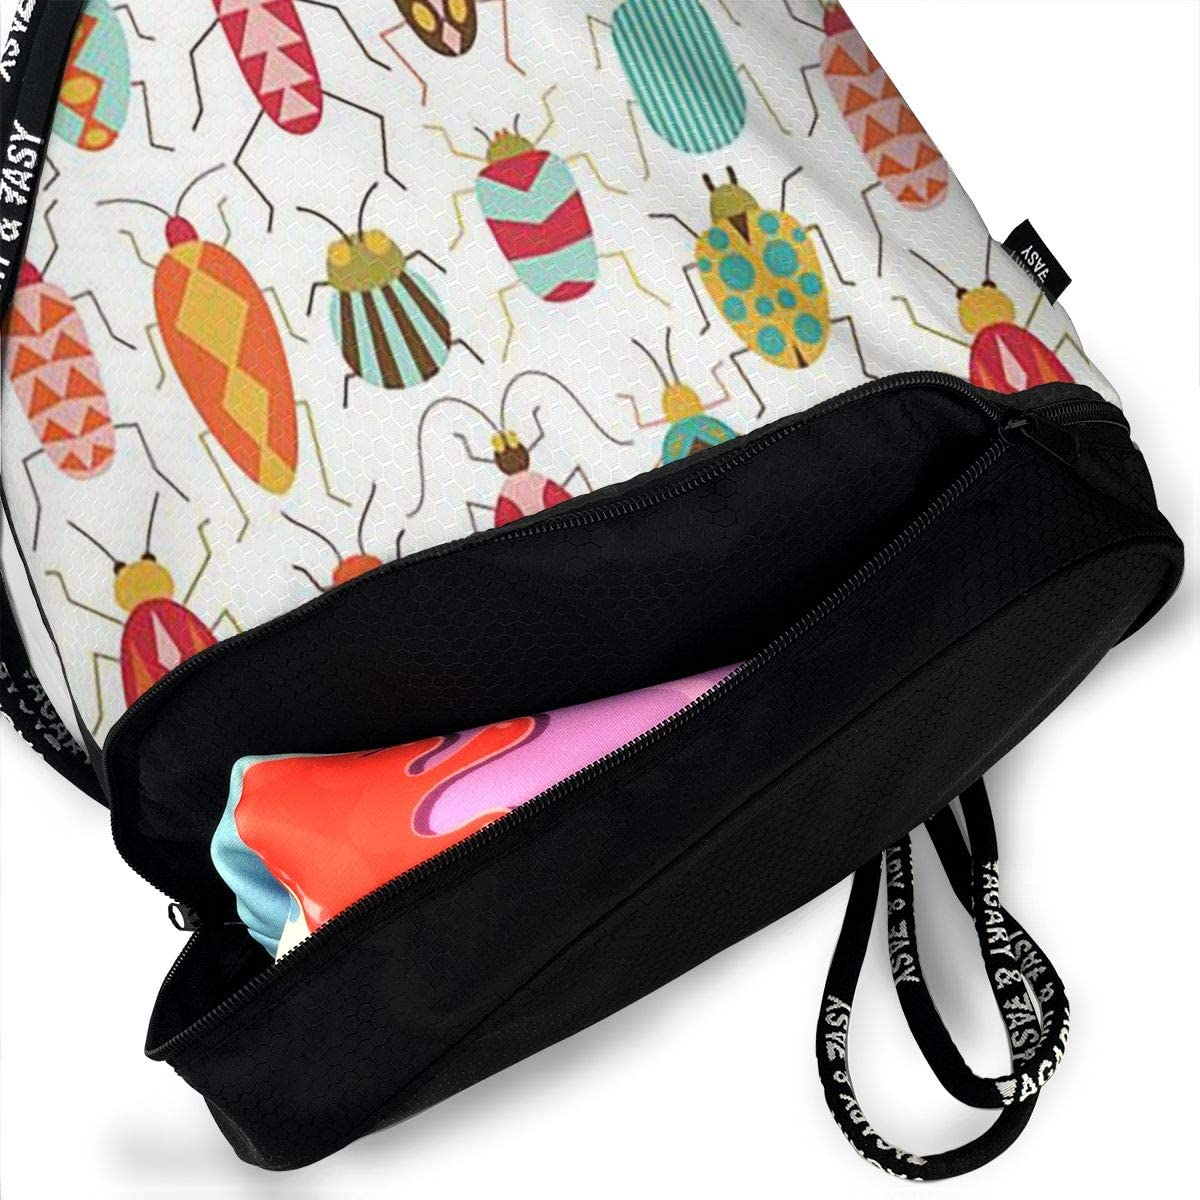 Insects Cinch Backpack Sackpack Tote Sack Lightweight Waterproof Large Storage Drawstring Bag For Men /& Women